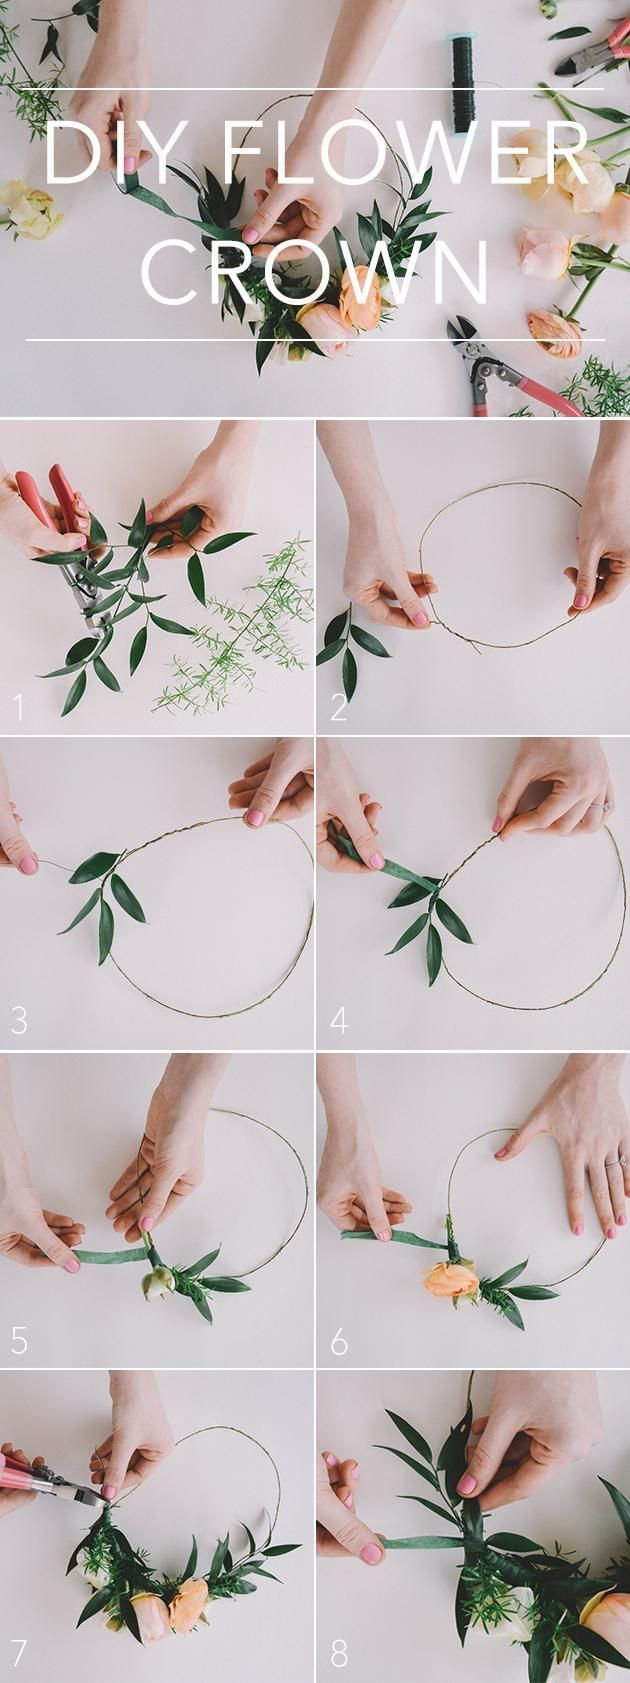 How to diy and wear a flower crown for your wedding pinterest how to diy a flower crown for your wedding day brides izmirmasajfo